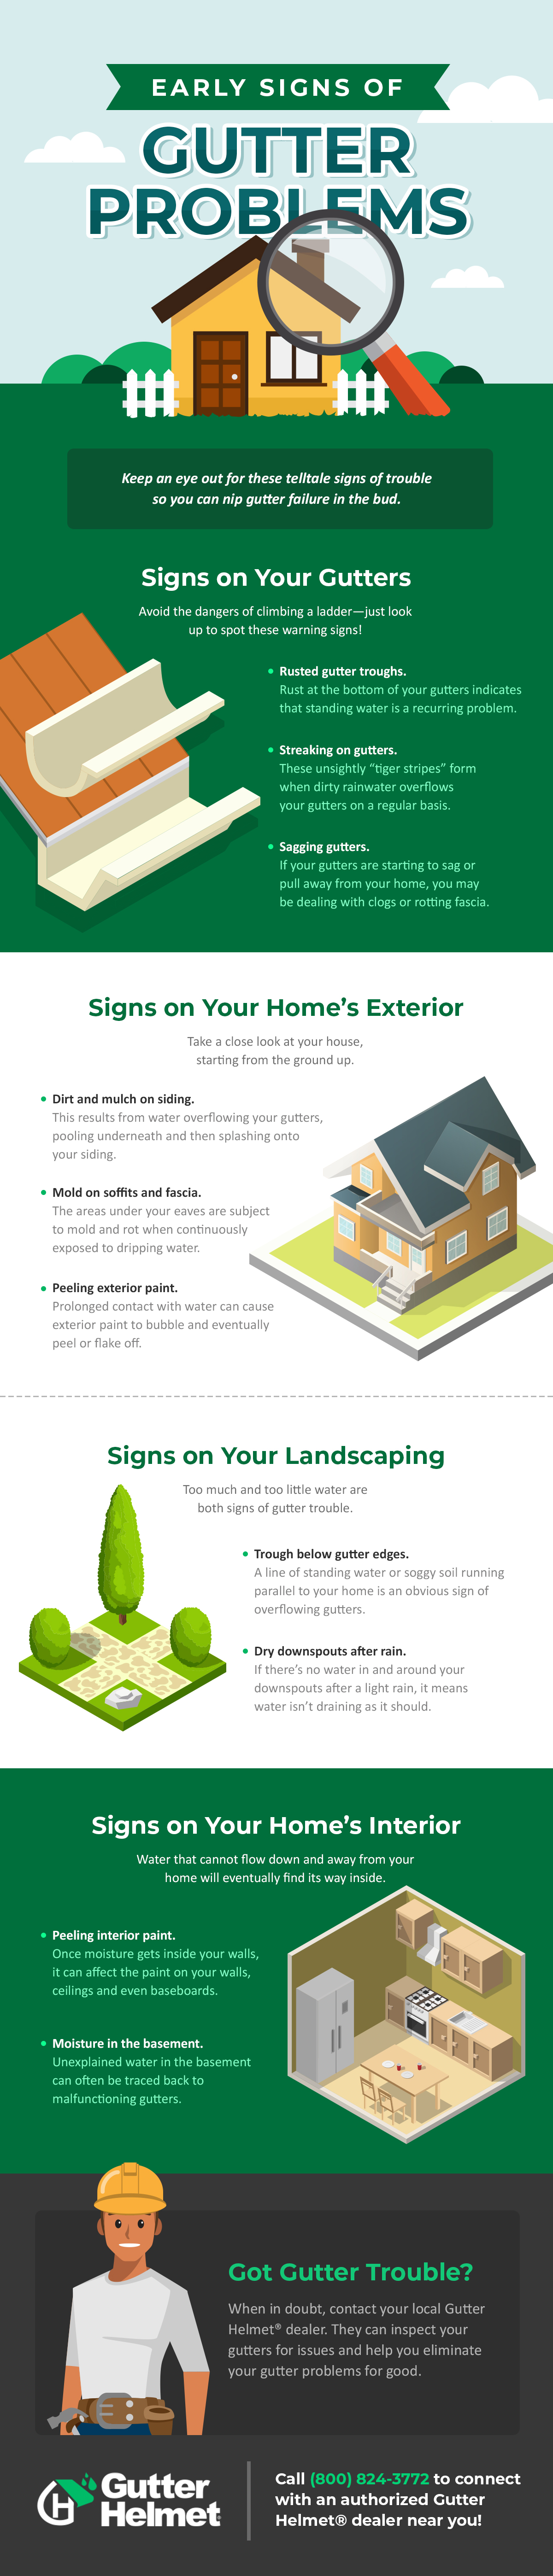 Infographic: Early Signs Of Gutter Problems